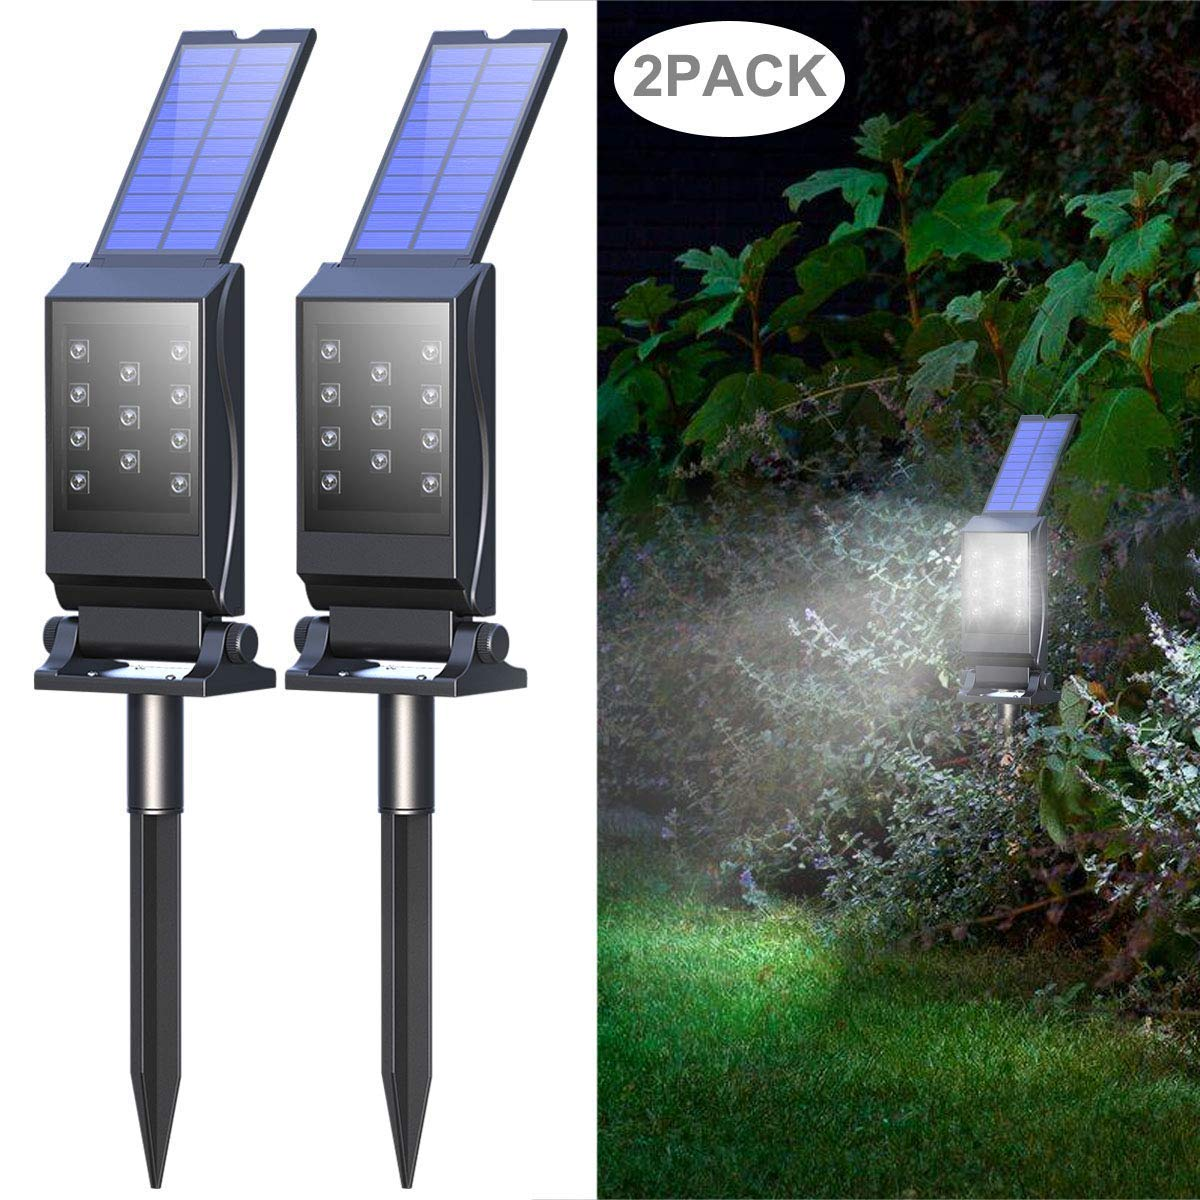 Mulcolor Solar Lights,【Latest】11 LED 2-in-1 Waterproof Solar Powered Garden Light Solar Spotlights Solar Landscape Lights, Auto On/Off for Outdoor Backyard, Driveway, Walkway, Patio,Porch (2 Pack)